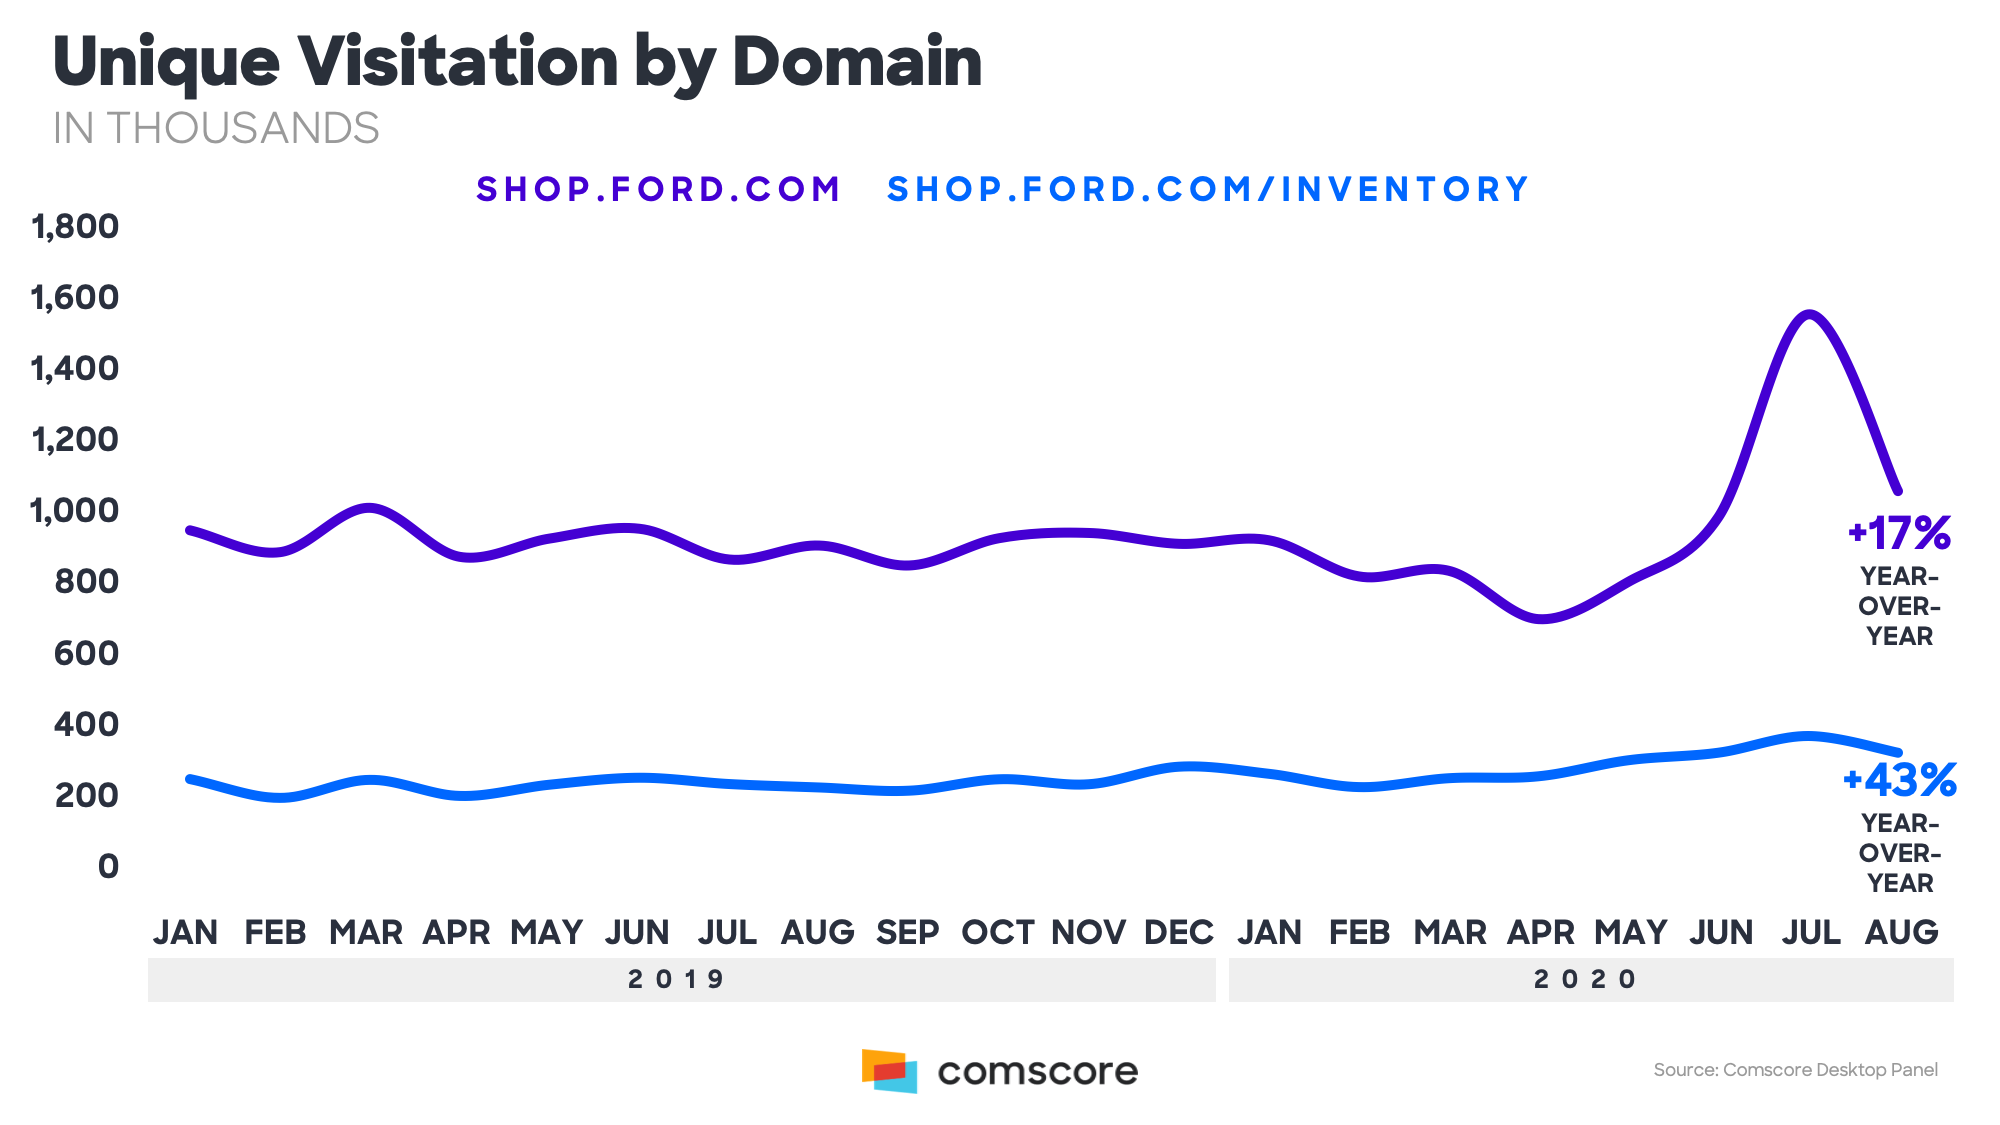 Unique Visitation by Domain in Thousands